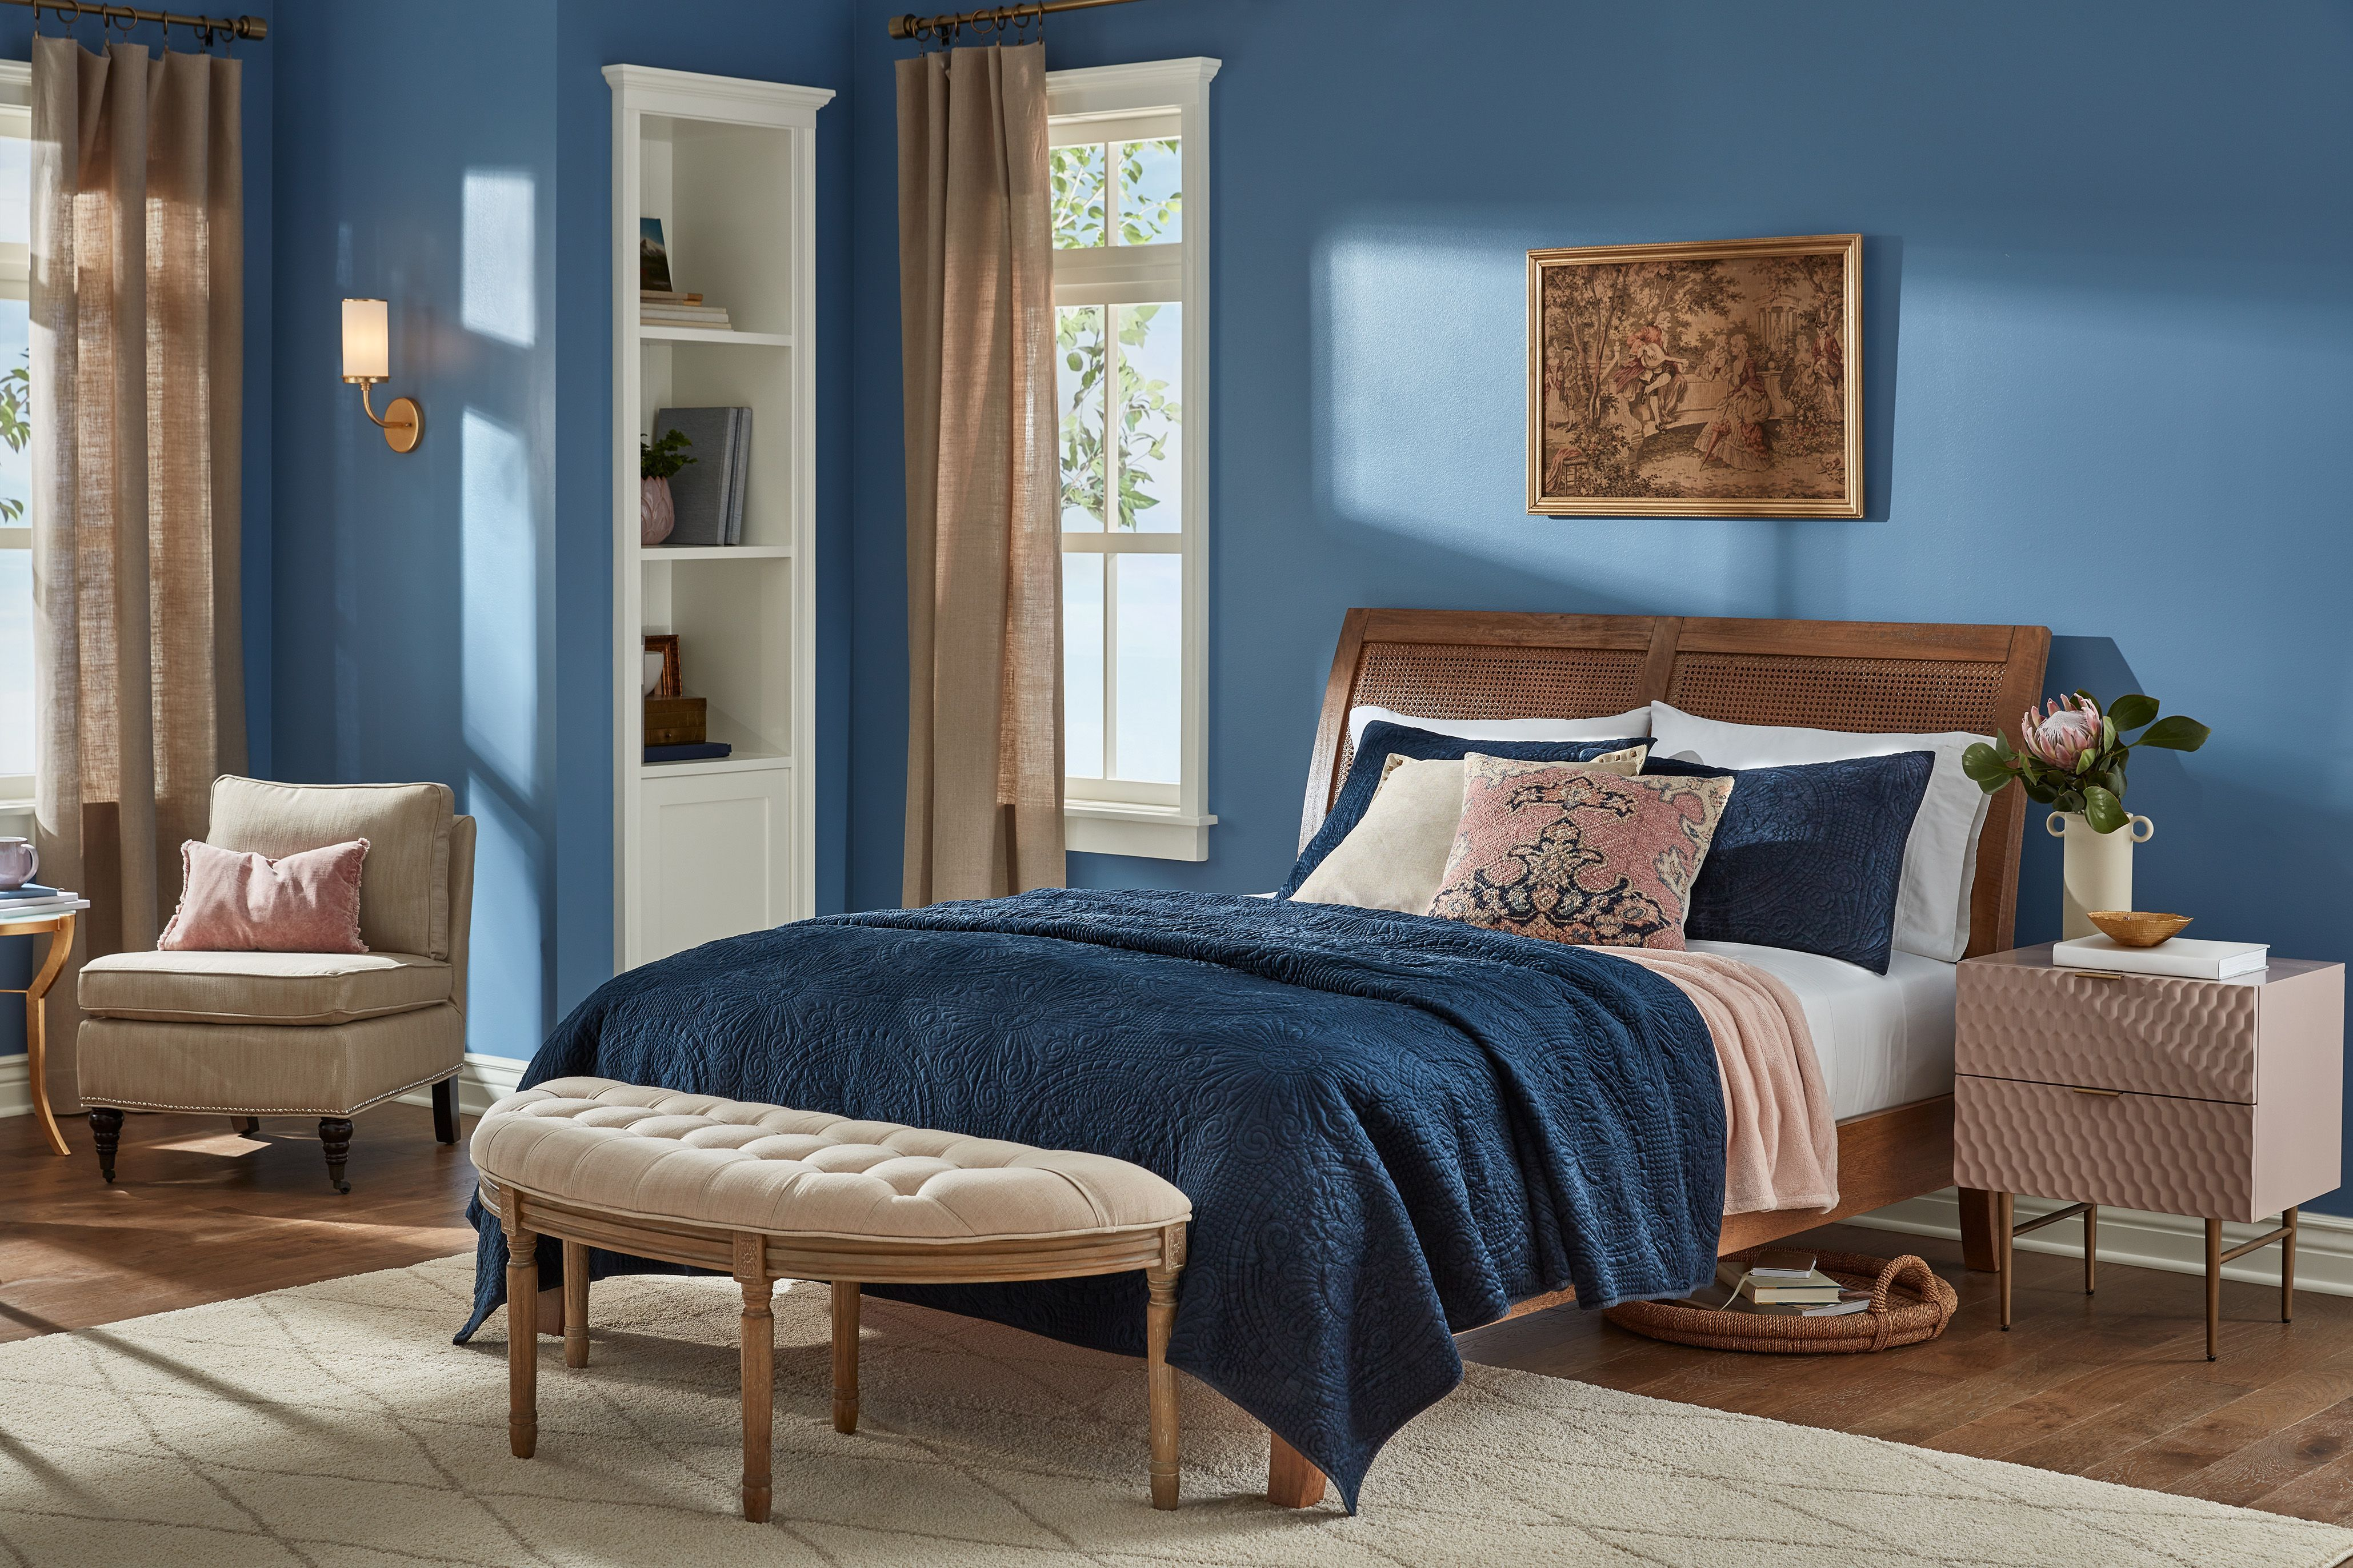 HGTV Home da Sherwin-Williams em 2020 Color of the Year Is ...